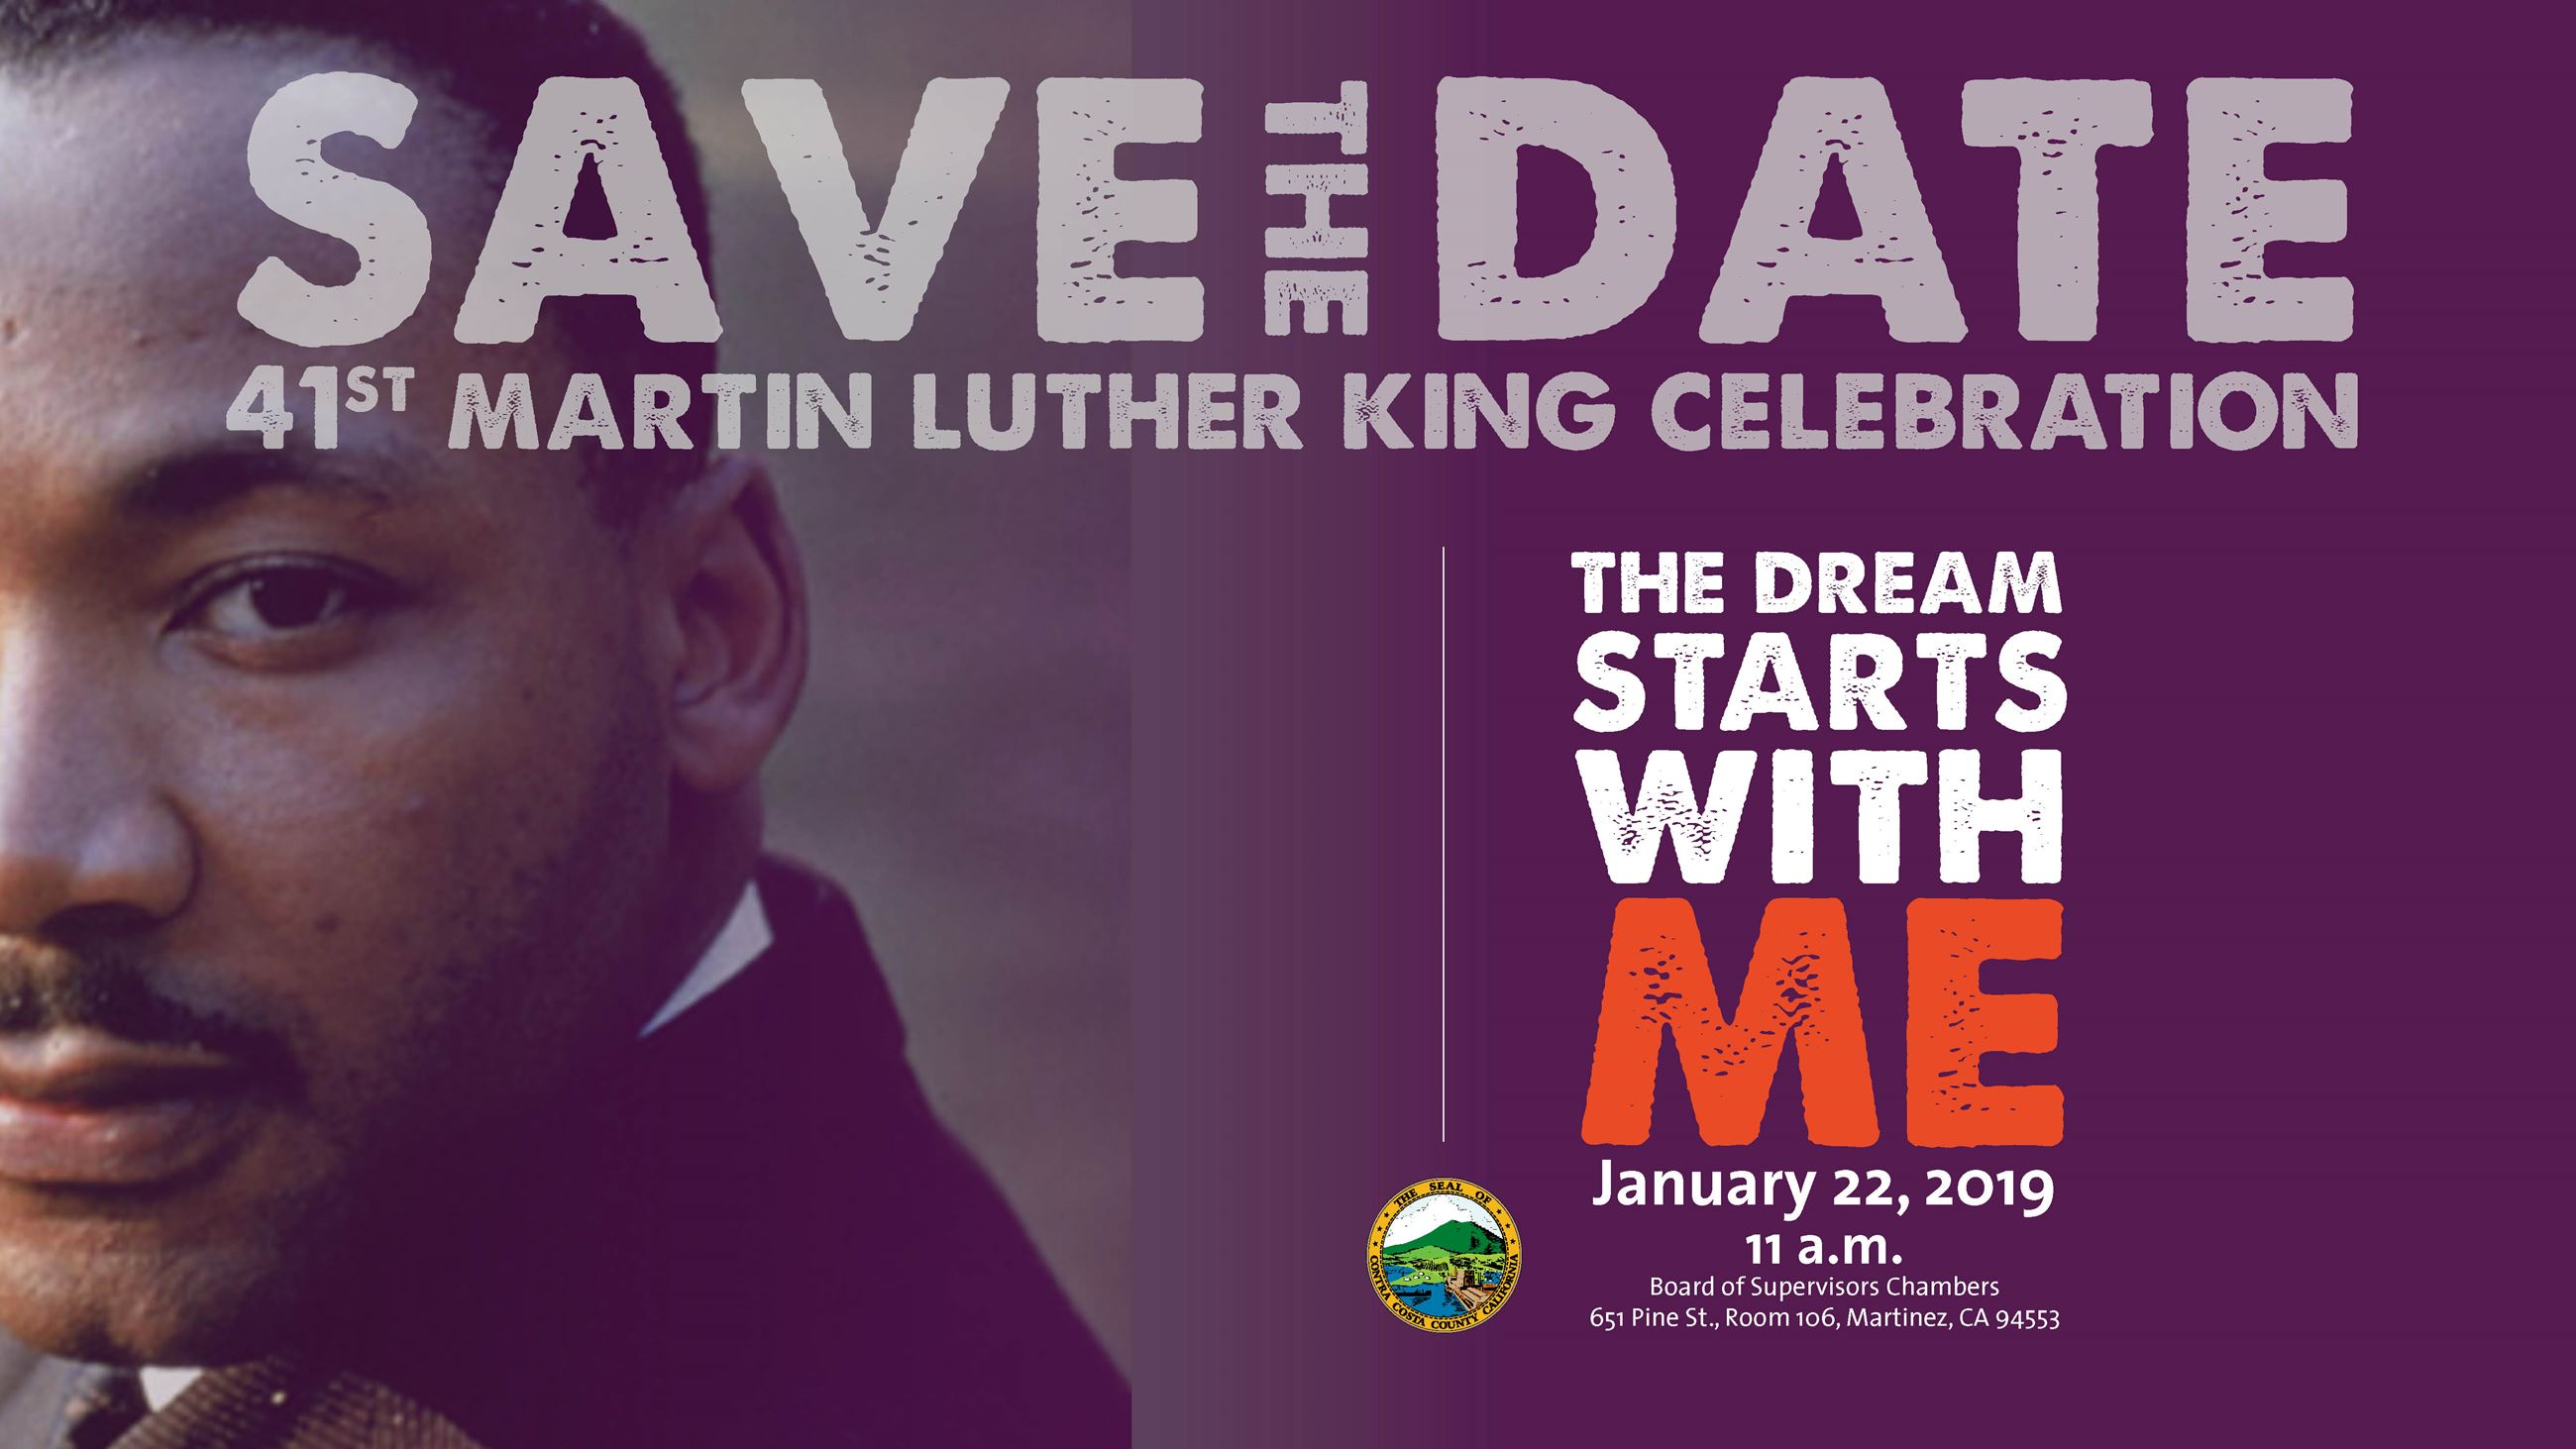 41st Martin Luther King Celebration